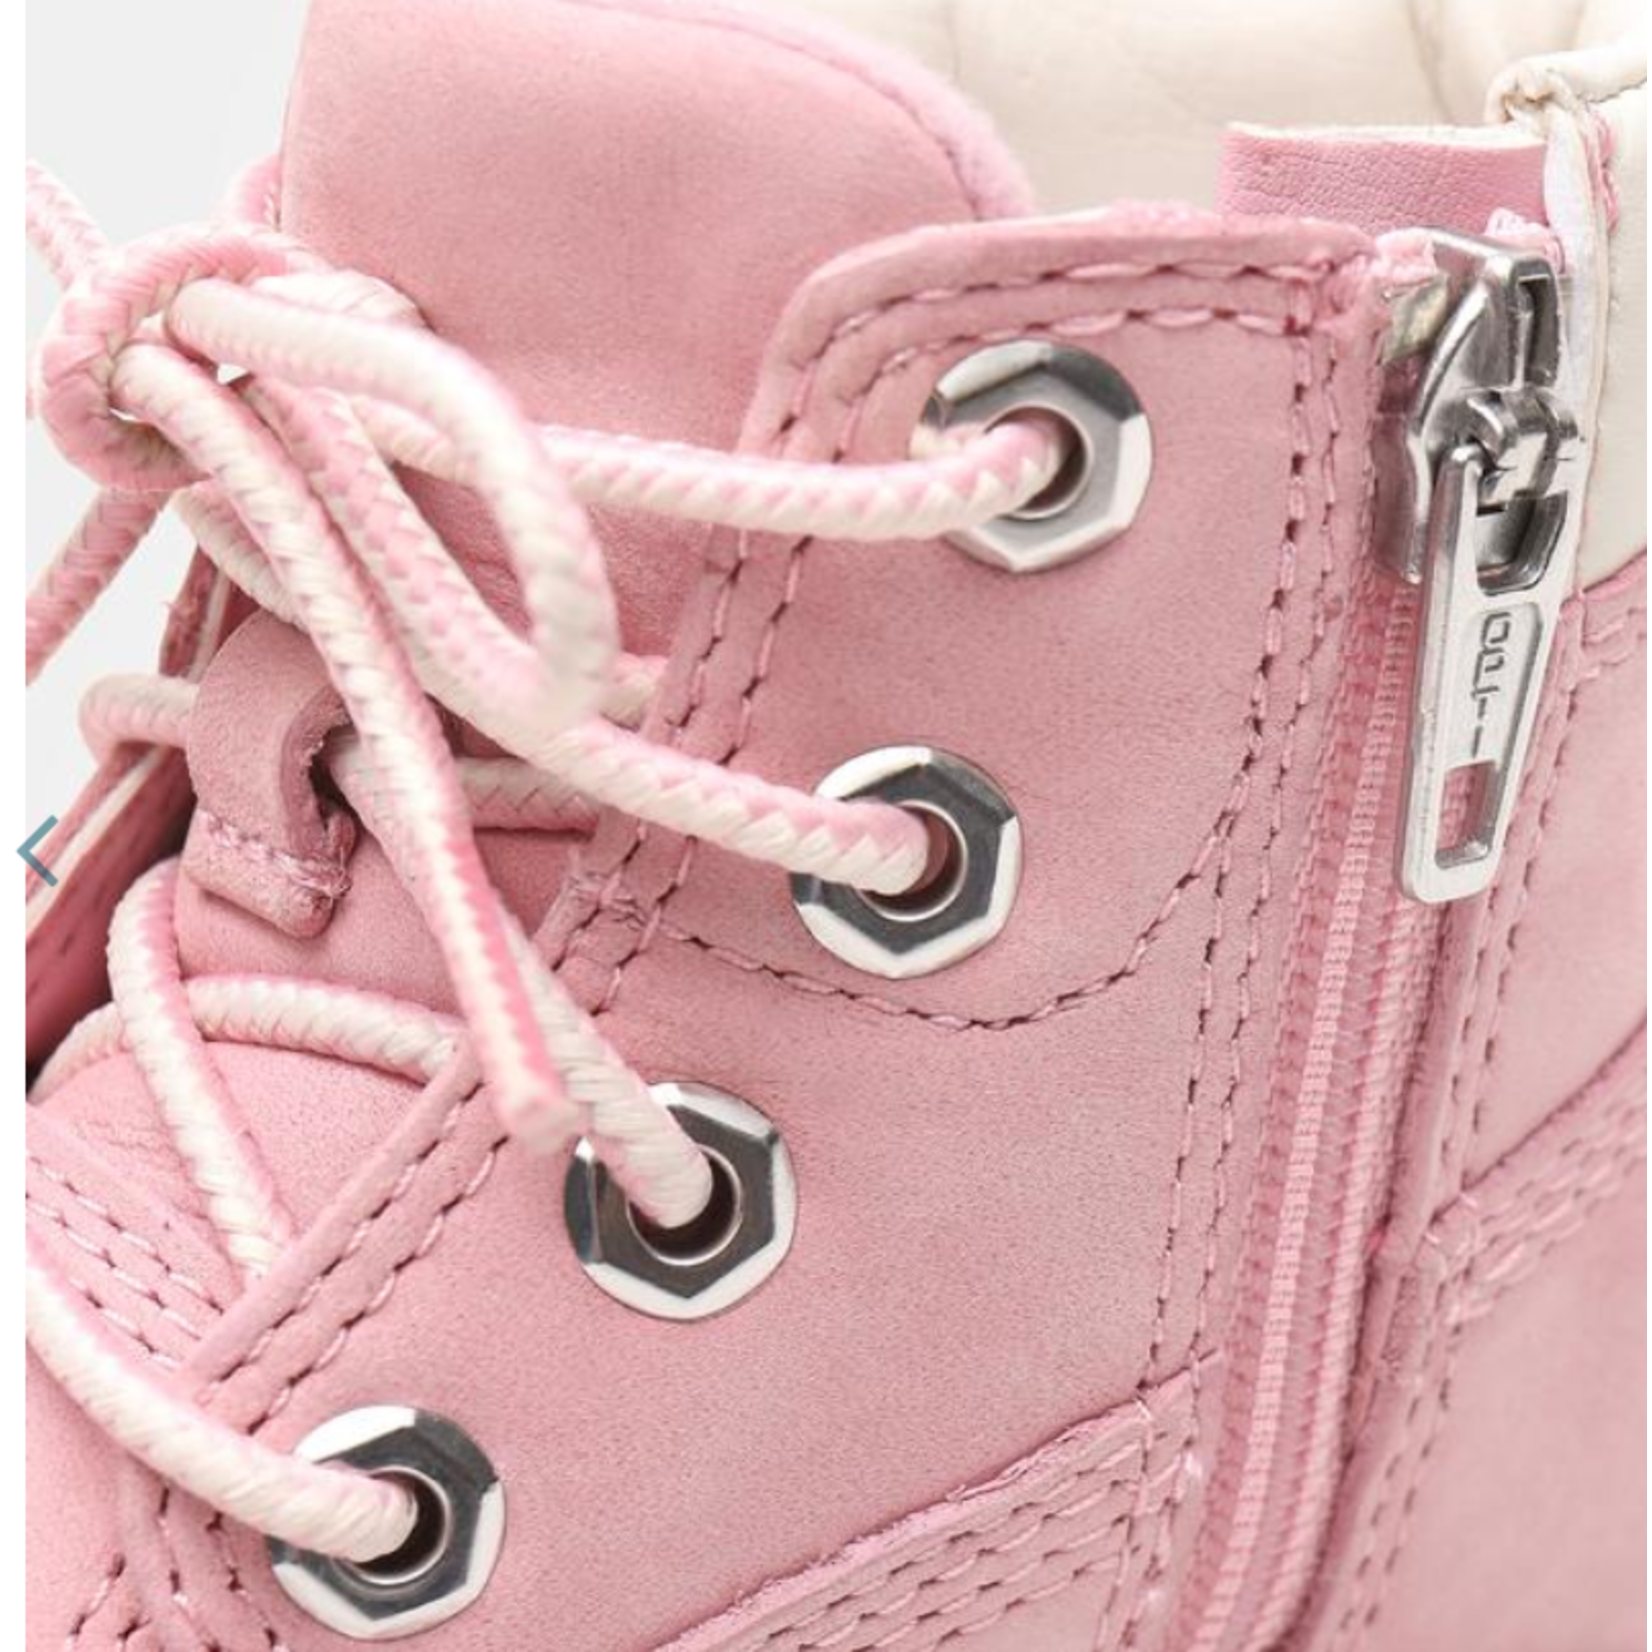 Timberland POKEY PINE 6 INCH BOOT FOR TODDLER IN PINK